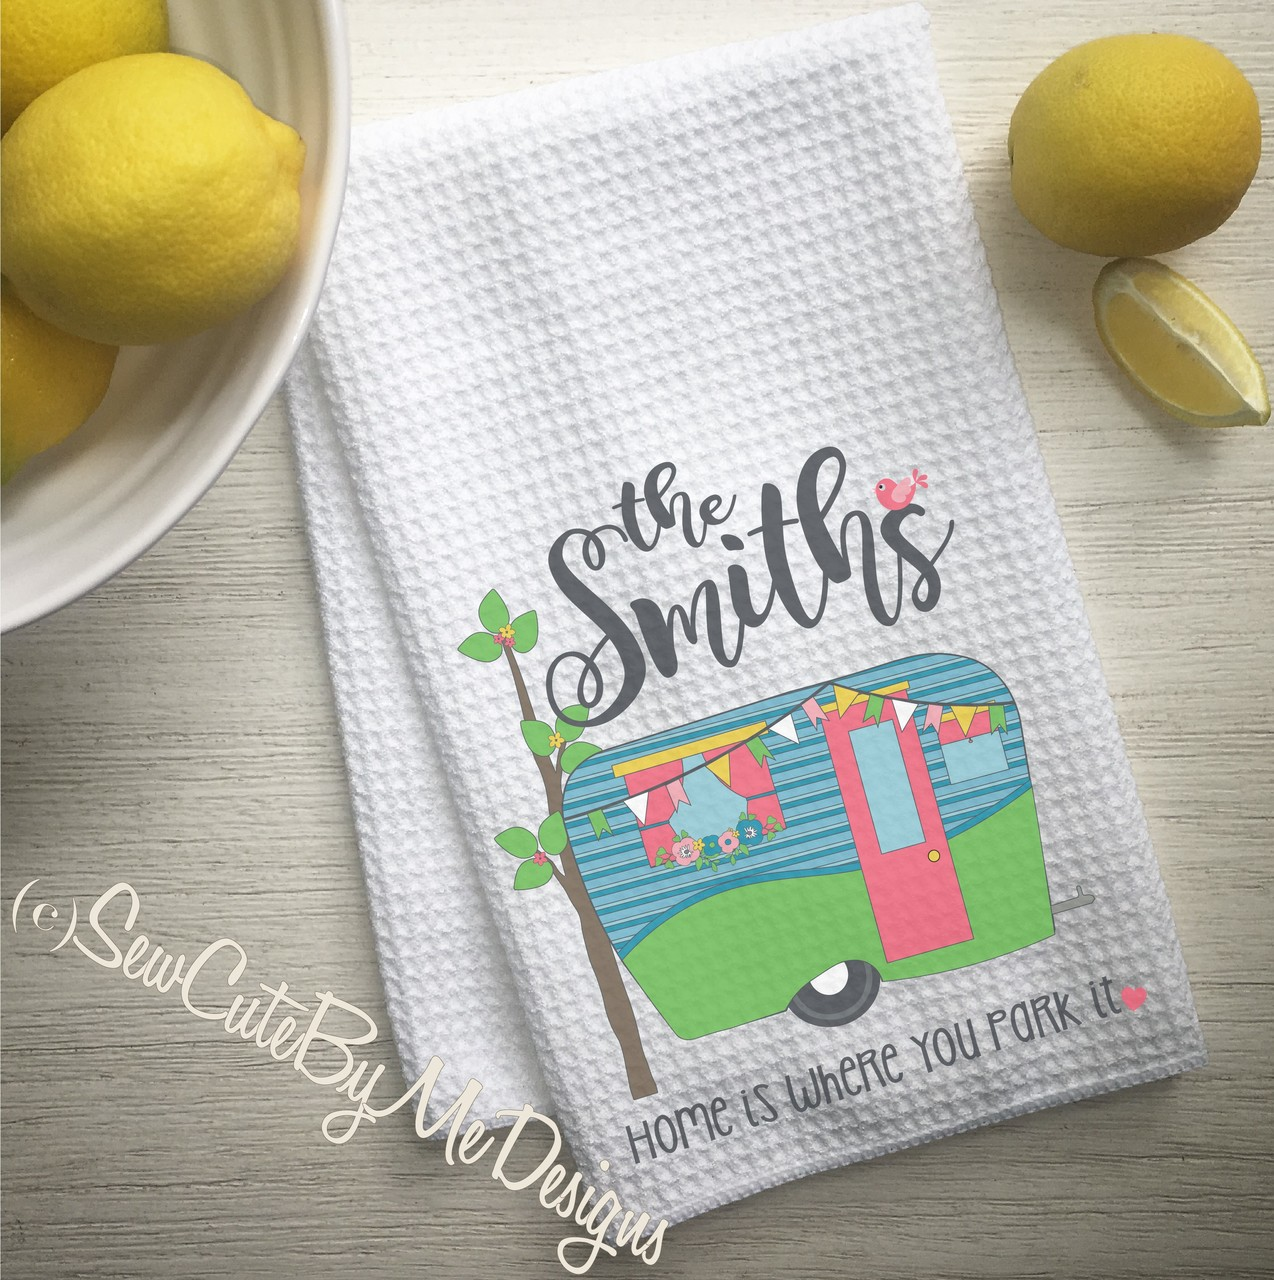 Personalized Camper Kitchen Towel - Personalized Camping Kitchen Towels - Home is Where You Park It - Aqua Green Coral